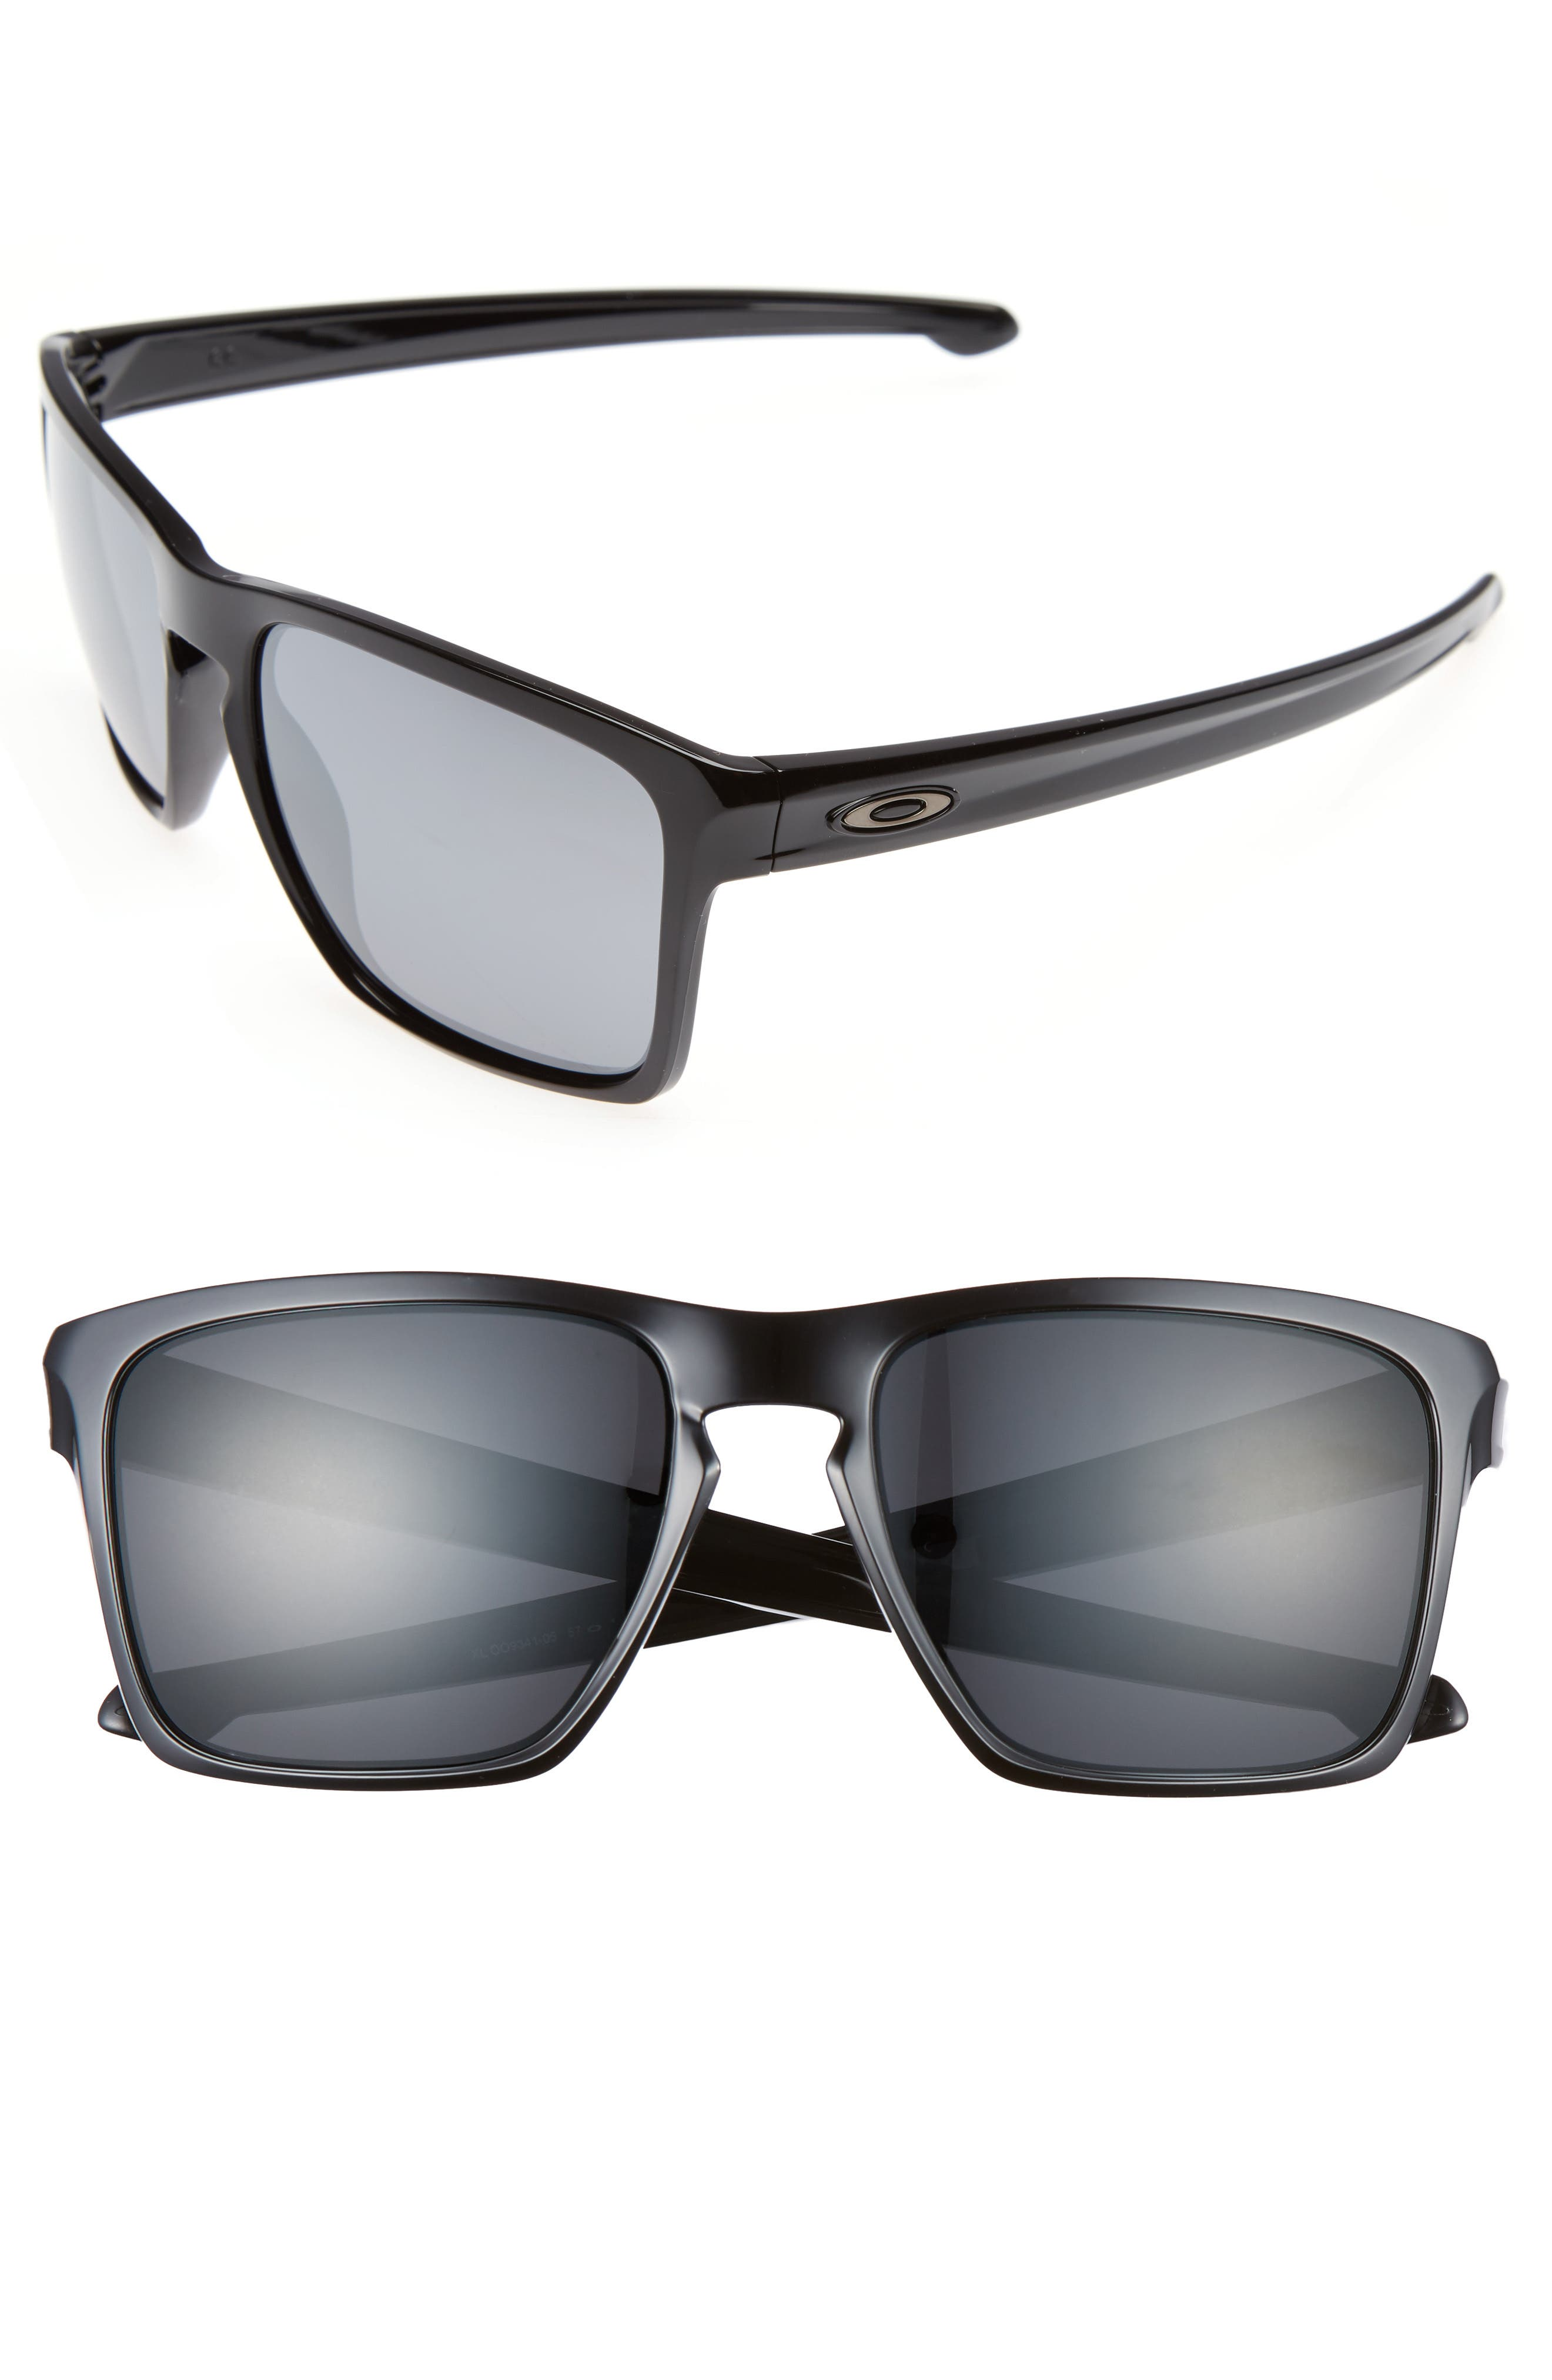 Silver XL 57mm Sunglasses,                             Main thumbnail 1, color,                             001